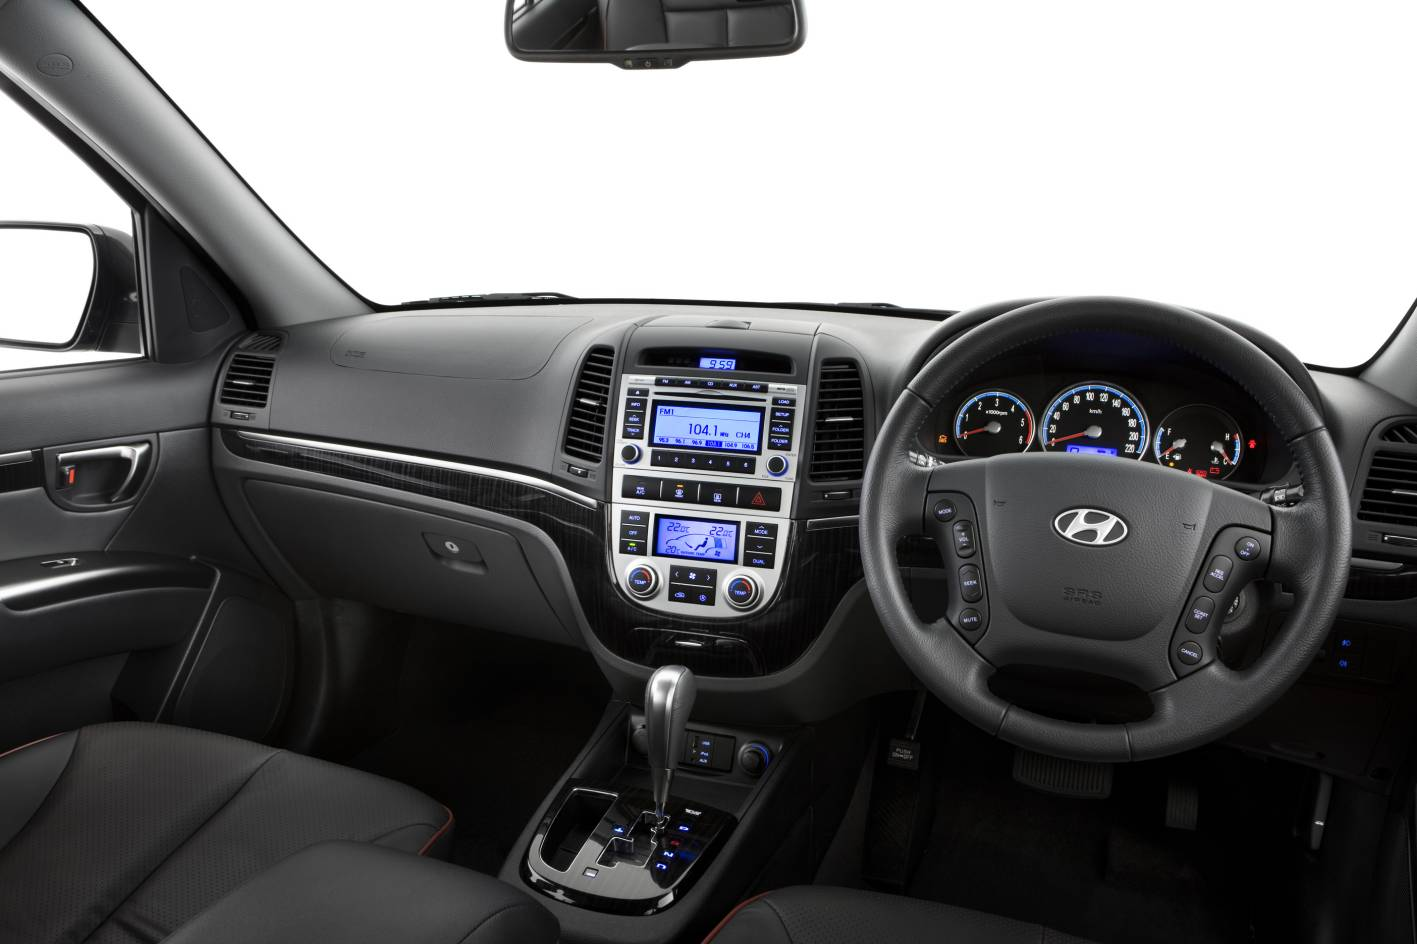 2013 Hyundai Santa Fe interior images leaked - Photos (7/7)